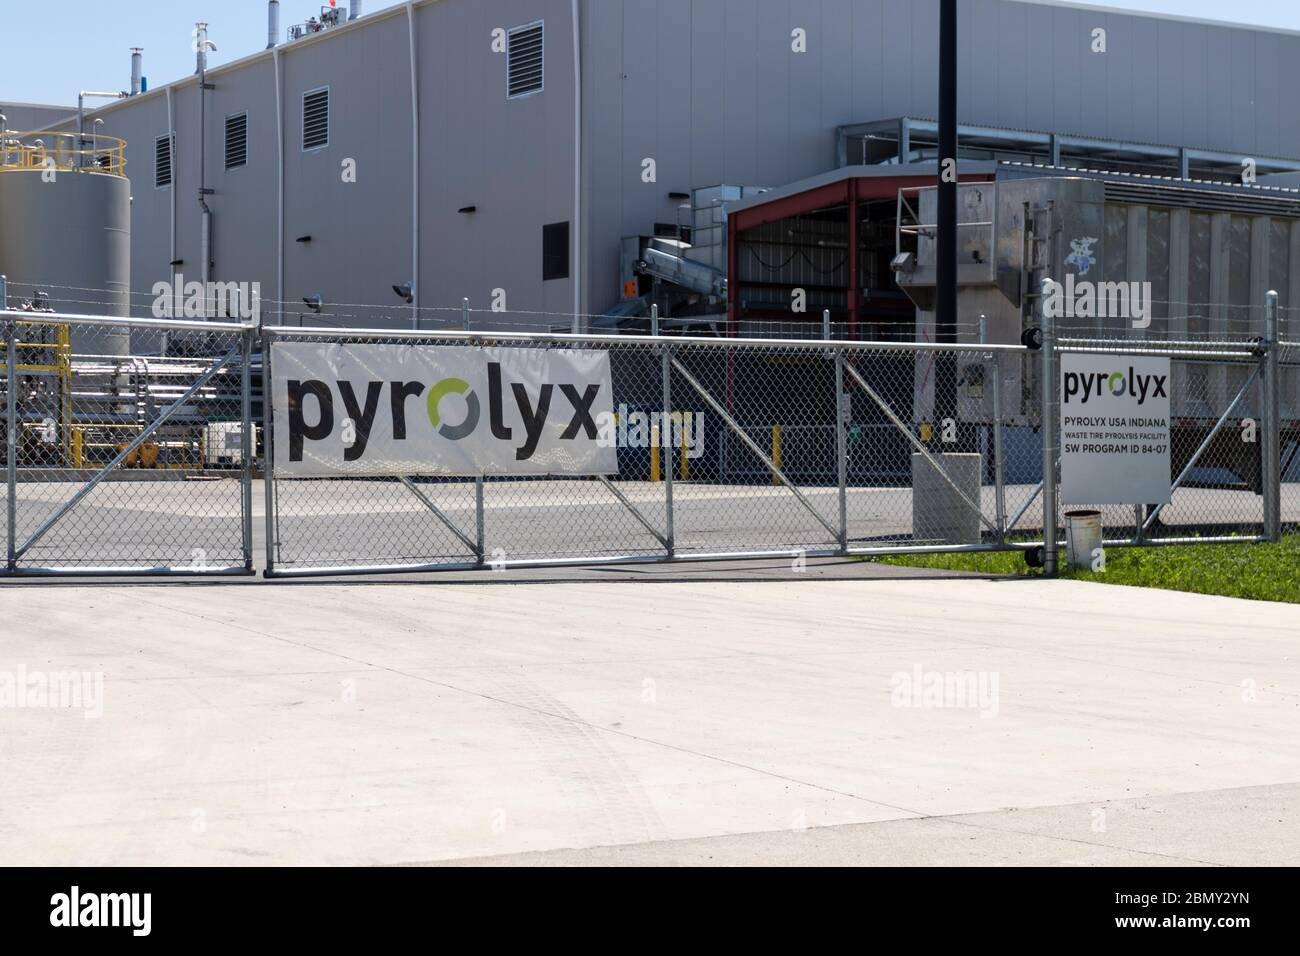 Terre Haute - Circa May 2020: Pyrolyx rCB plant. Pyrolyx has developed a specialized process that transforms waste tires into carbon black. Stock Photo